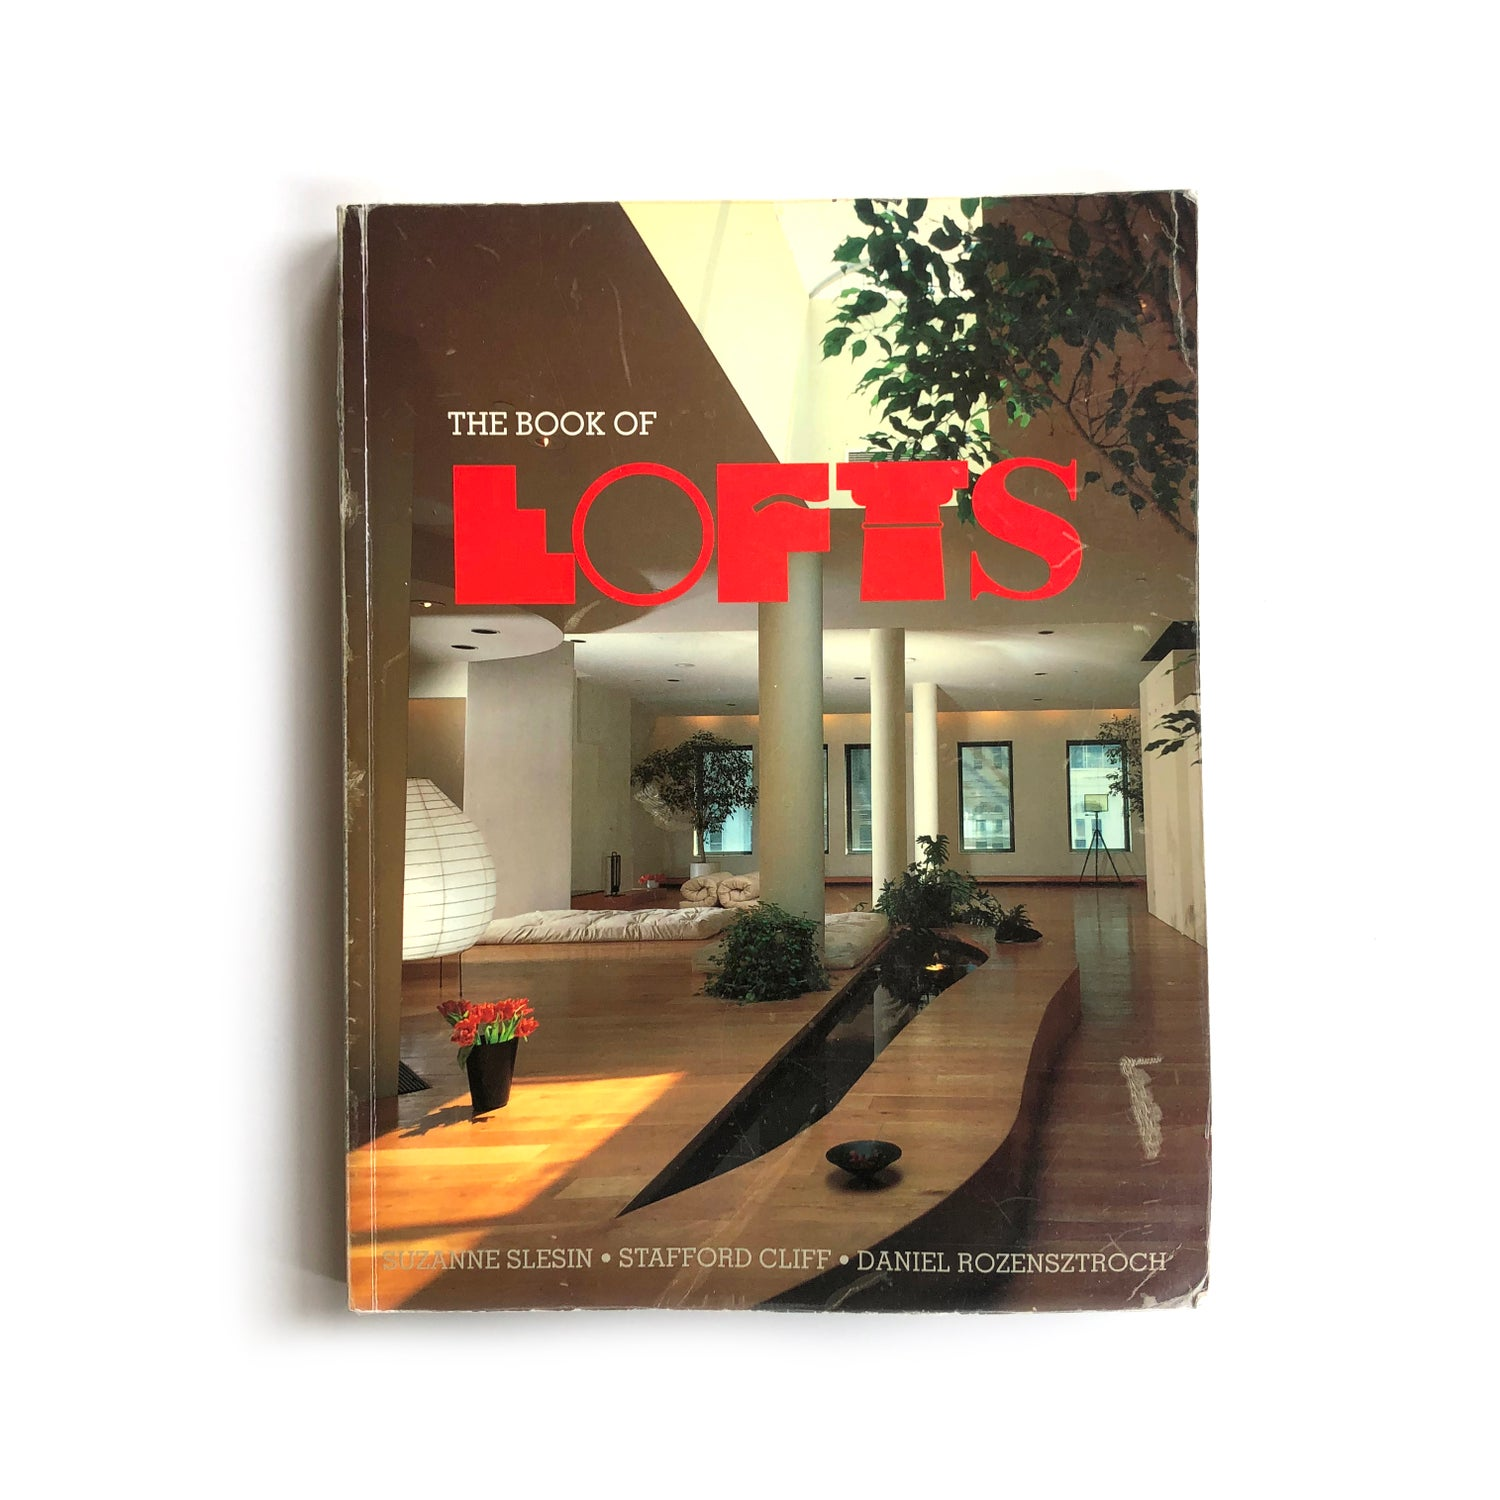 Image of The Book of Lofts